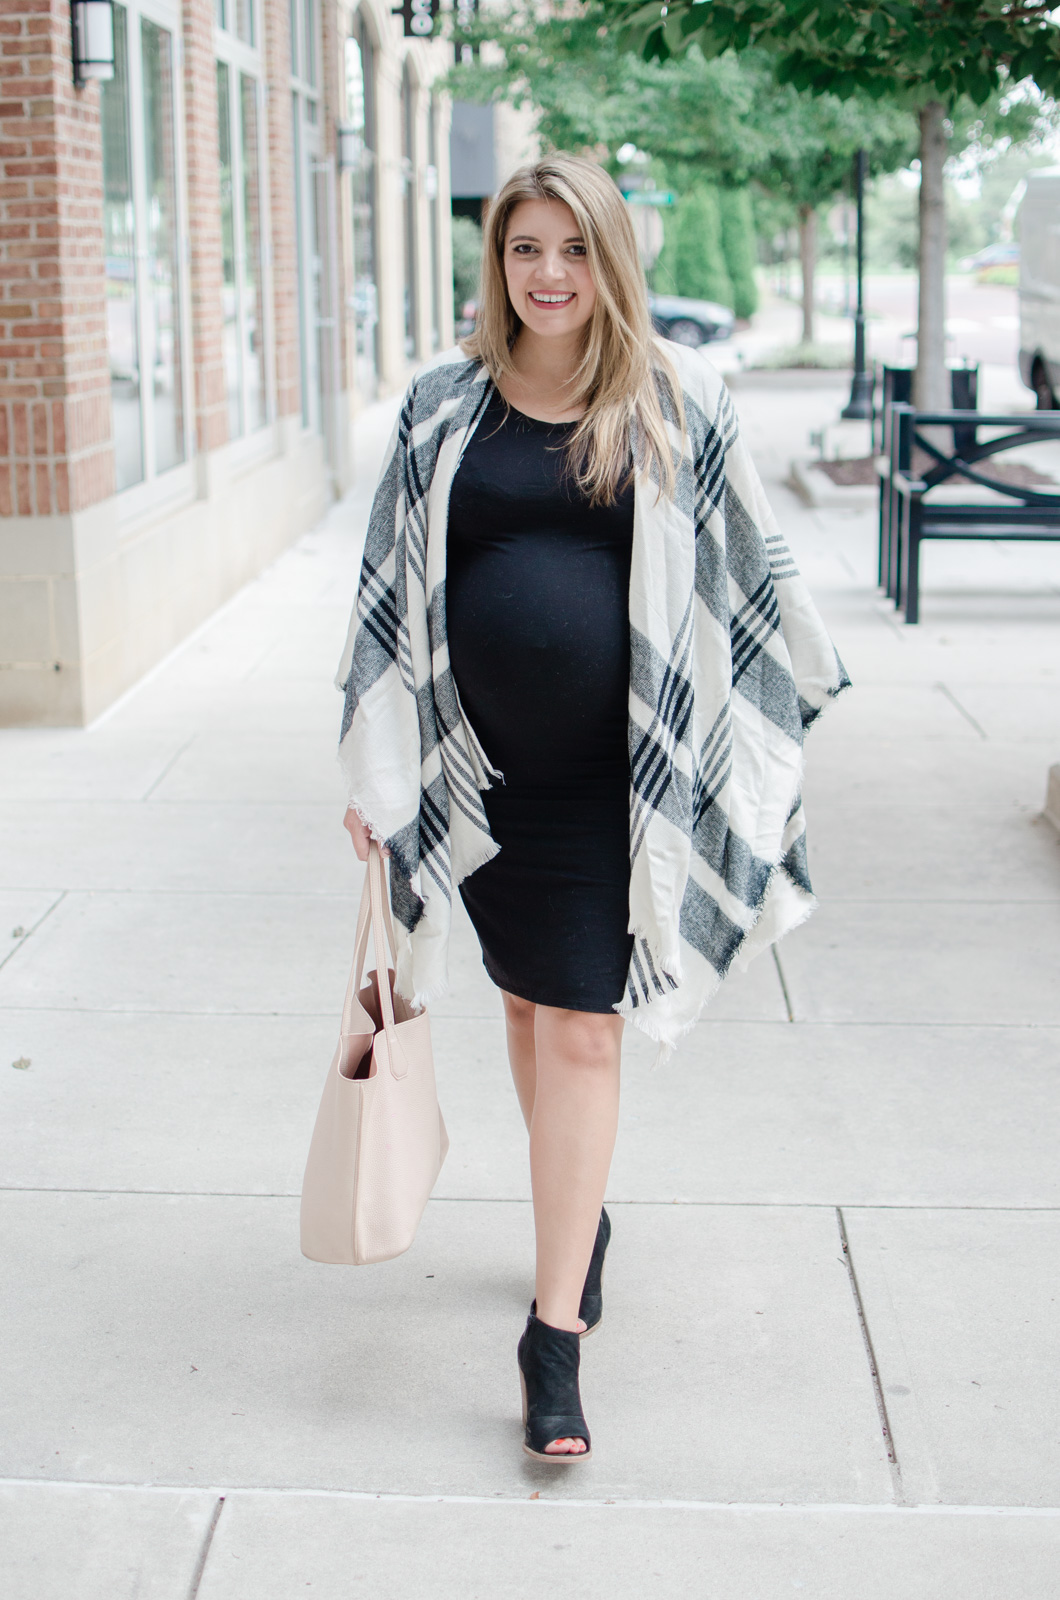 fall pregnancy style - poncho with bodycon tshirt dress | how to dress for a fall pregnancy bylaurenm.com